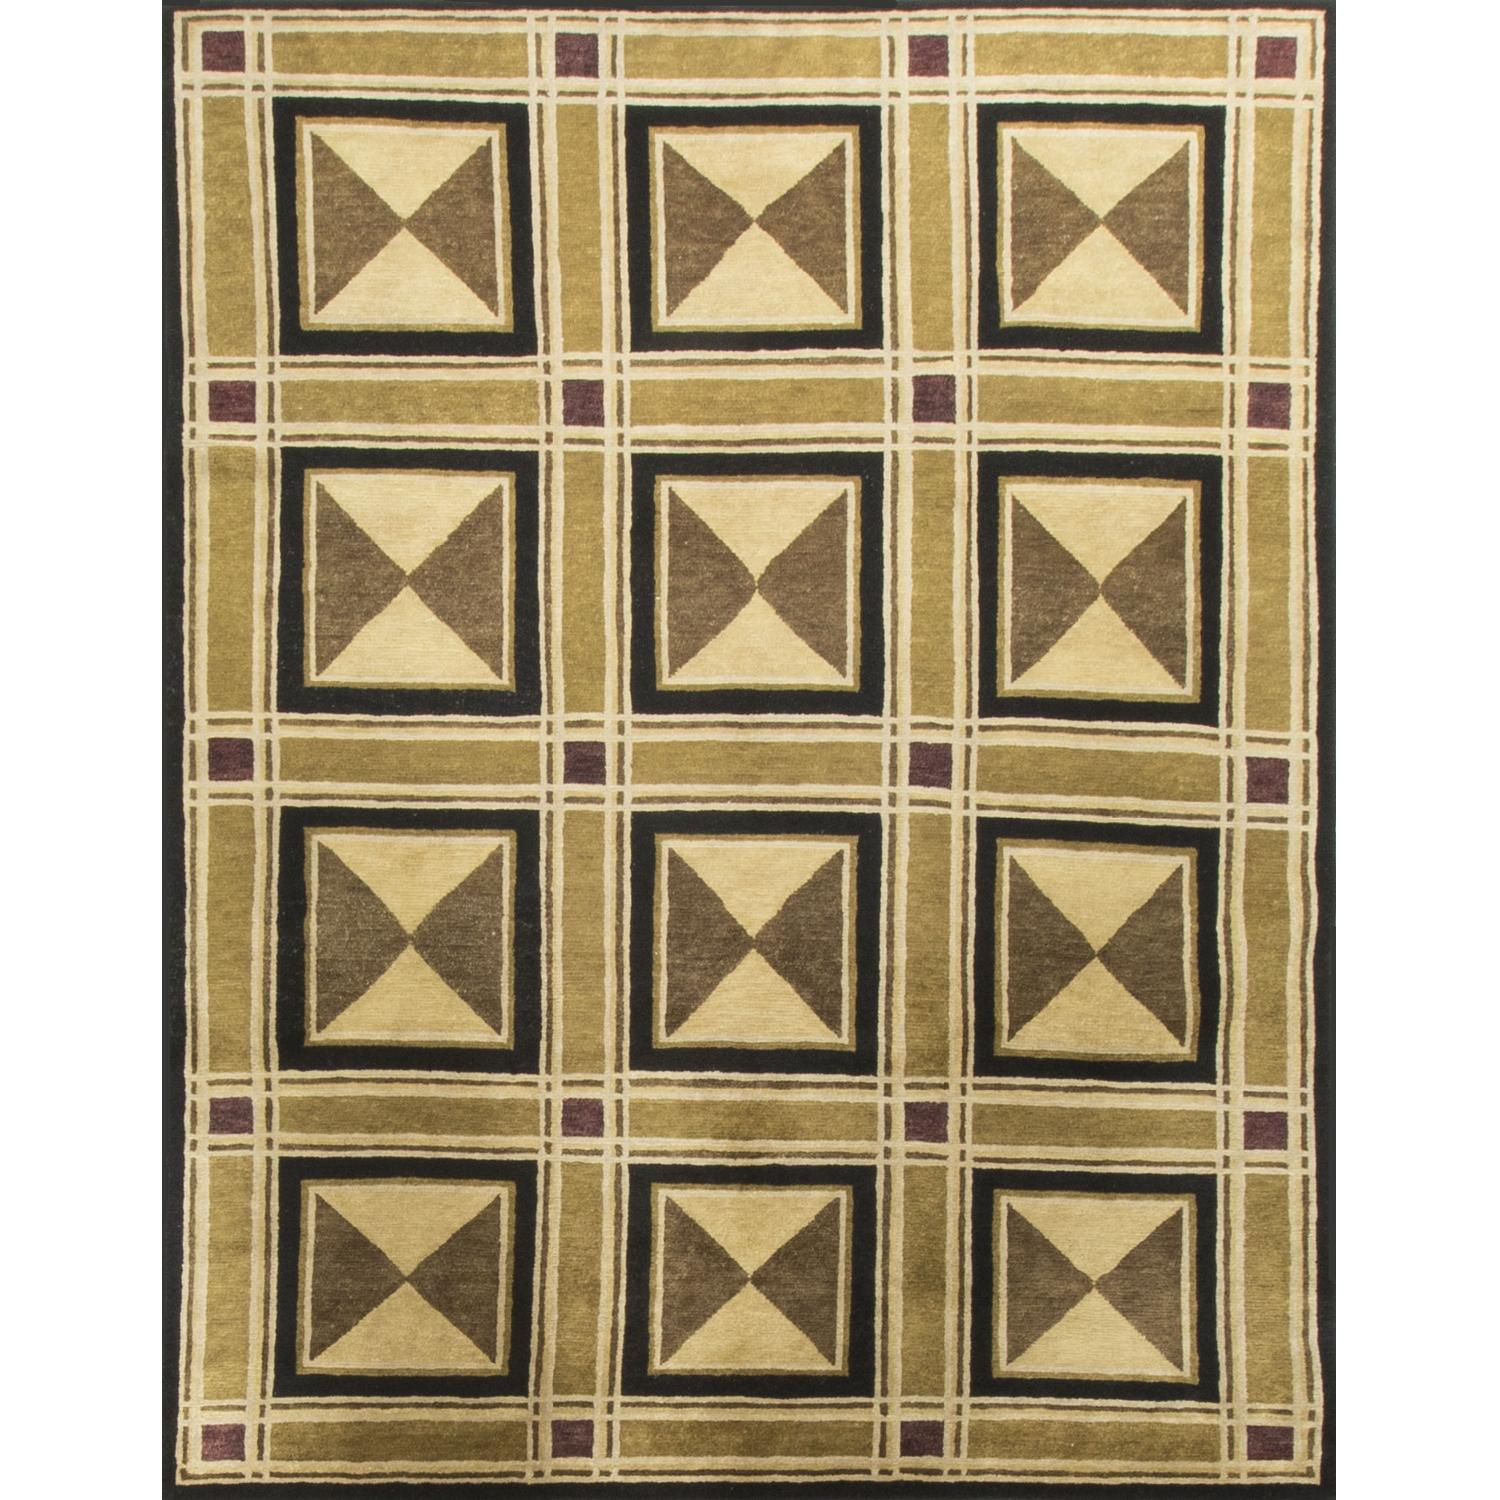 Modern Contemporary Hand Knotted Wool Rug in Black/Beige/Brown - image-0